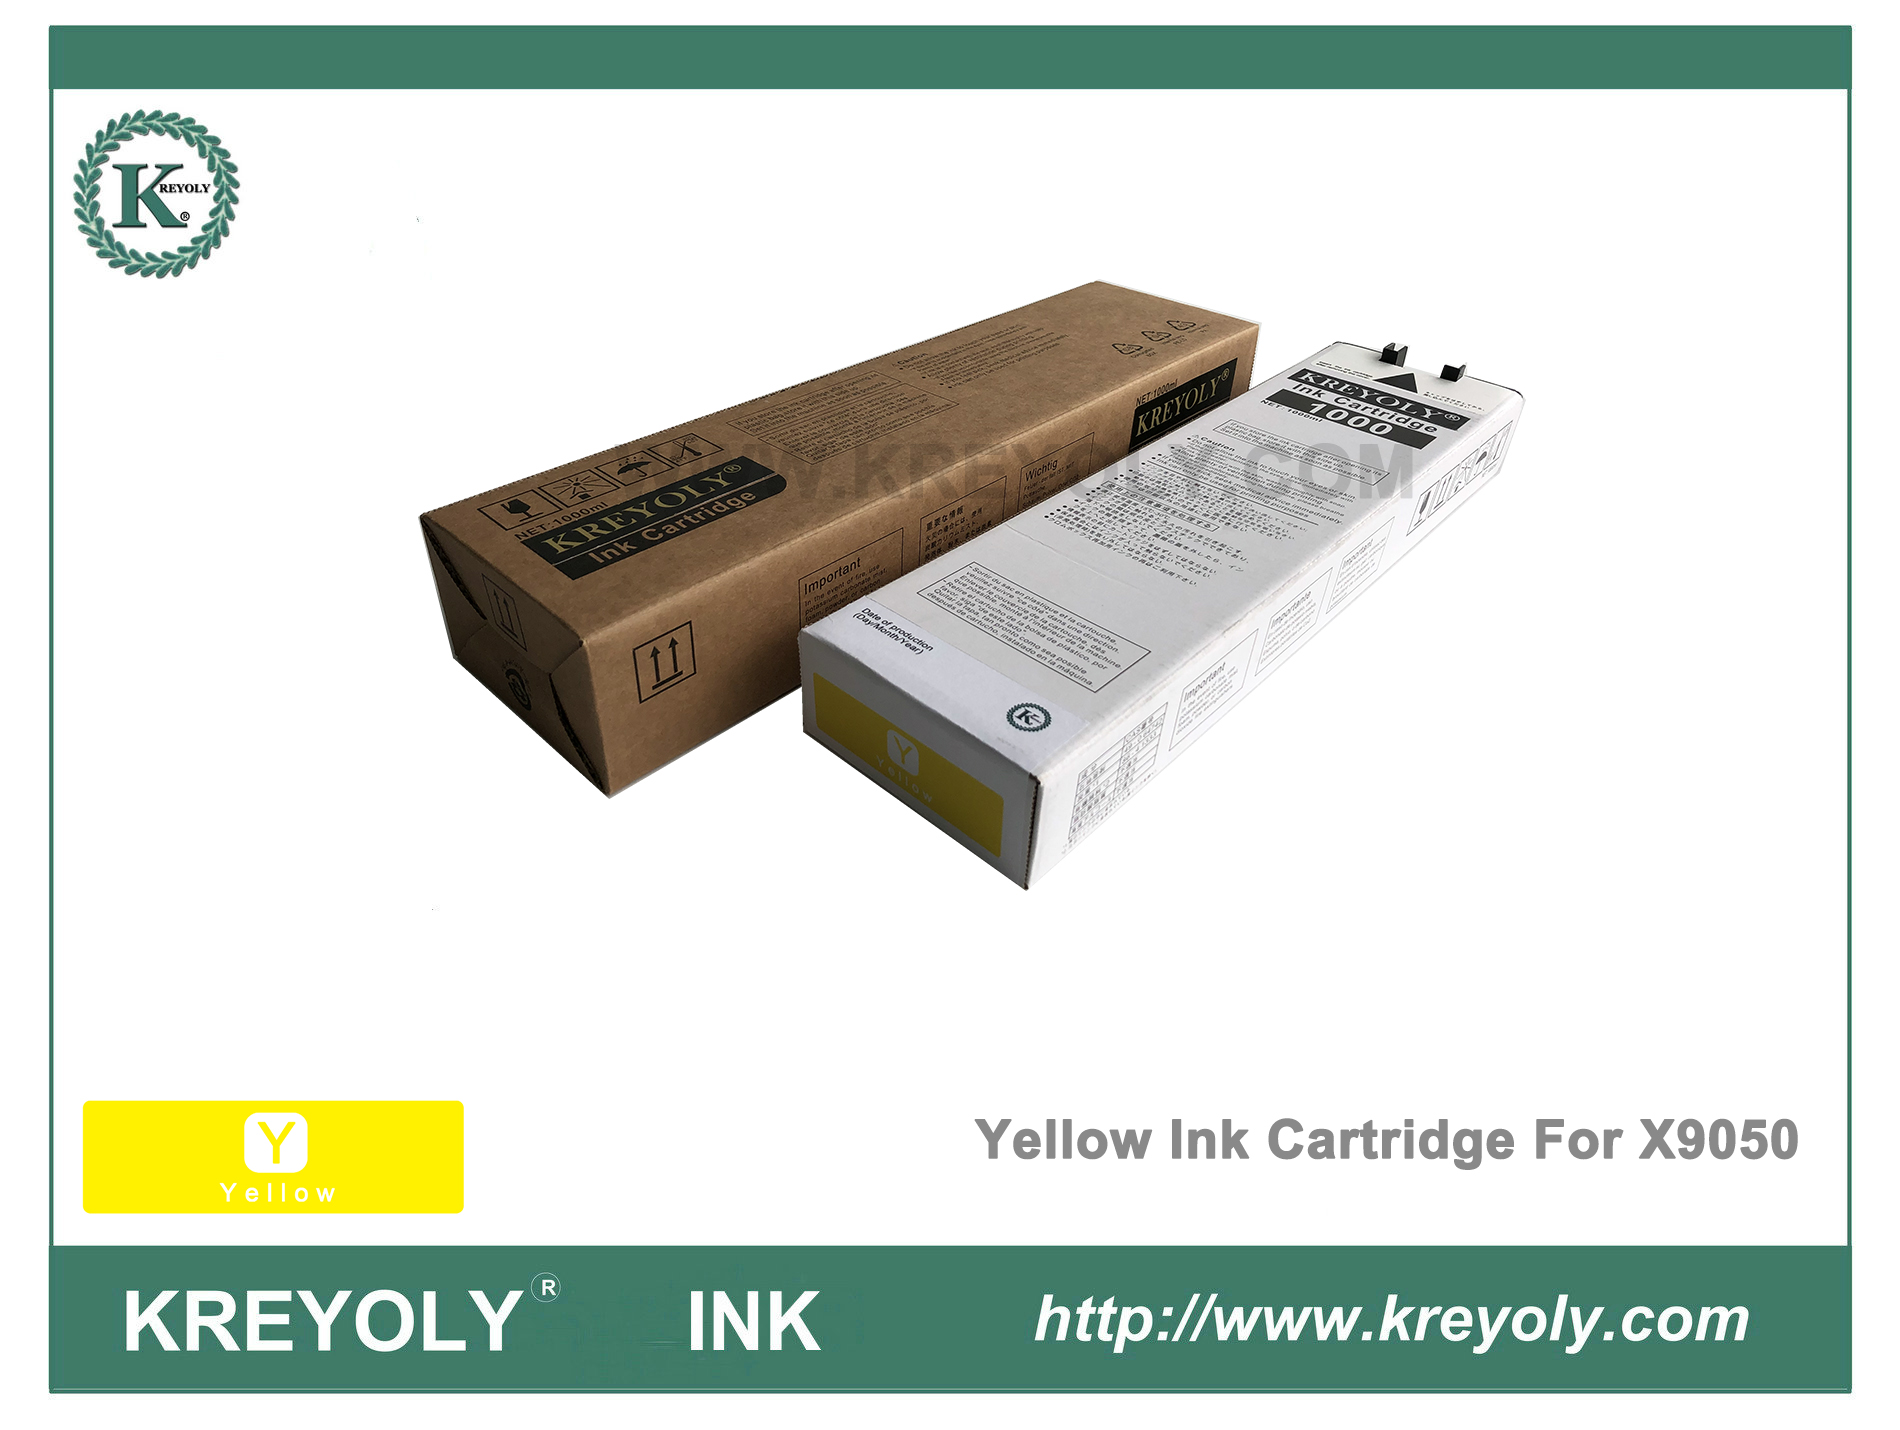 Riso ComColor Orphis X9050 Color Yellow Ink Cartridge